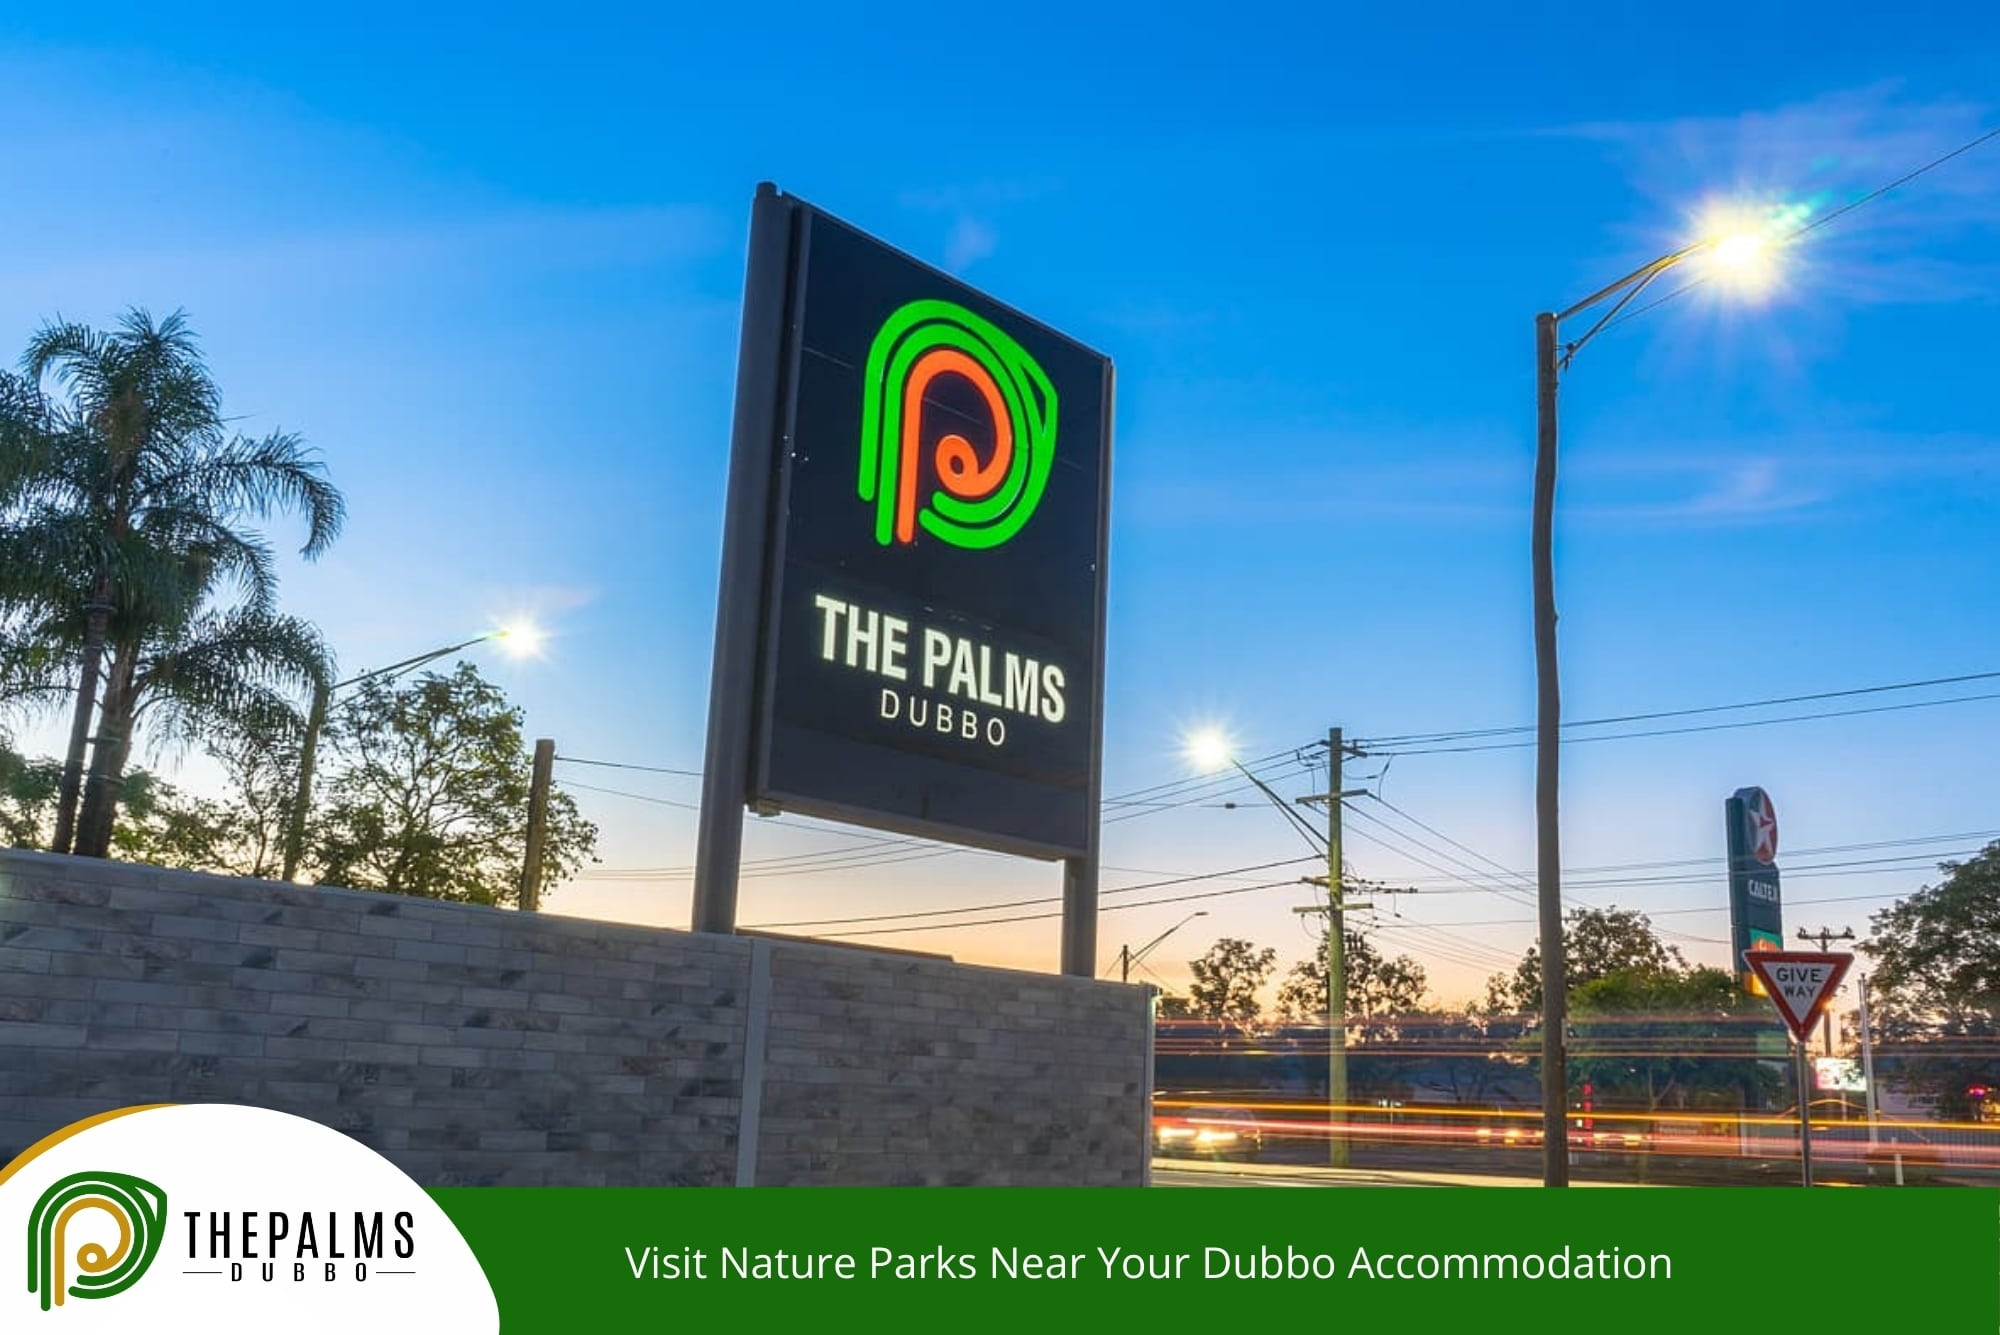 Visit Nature Parks Near Your Dubbo Accommodation